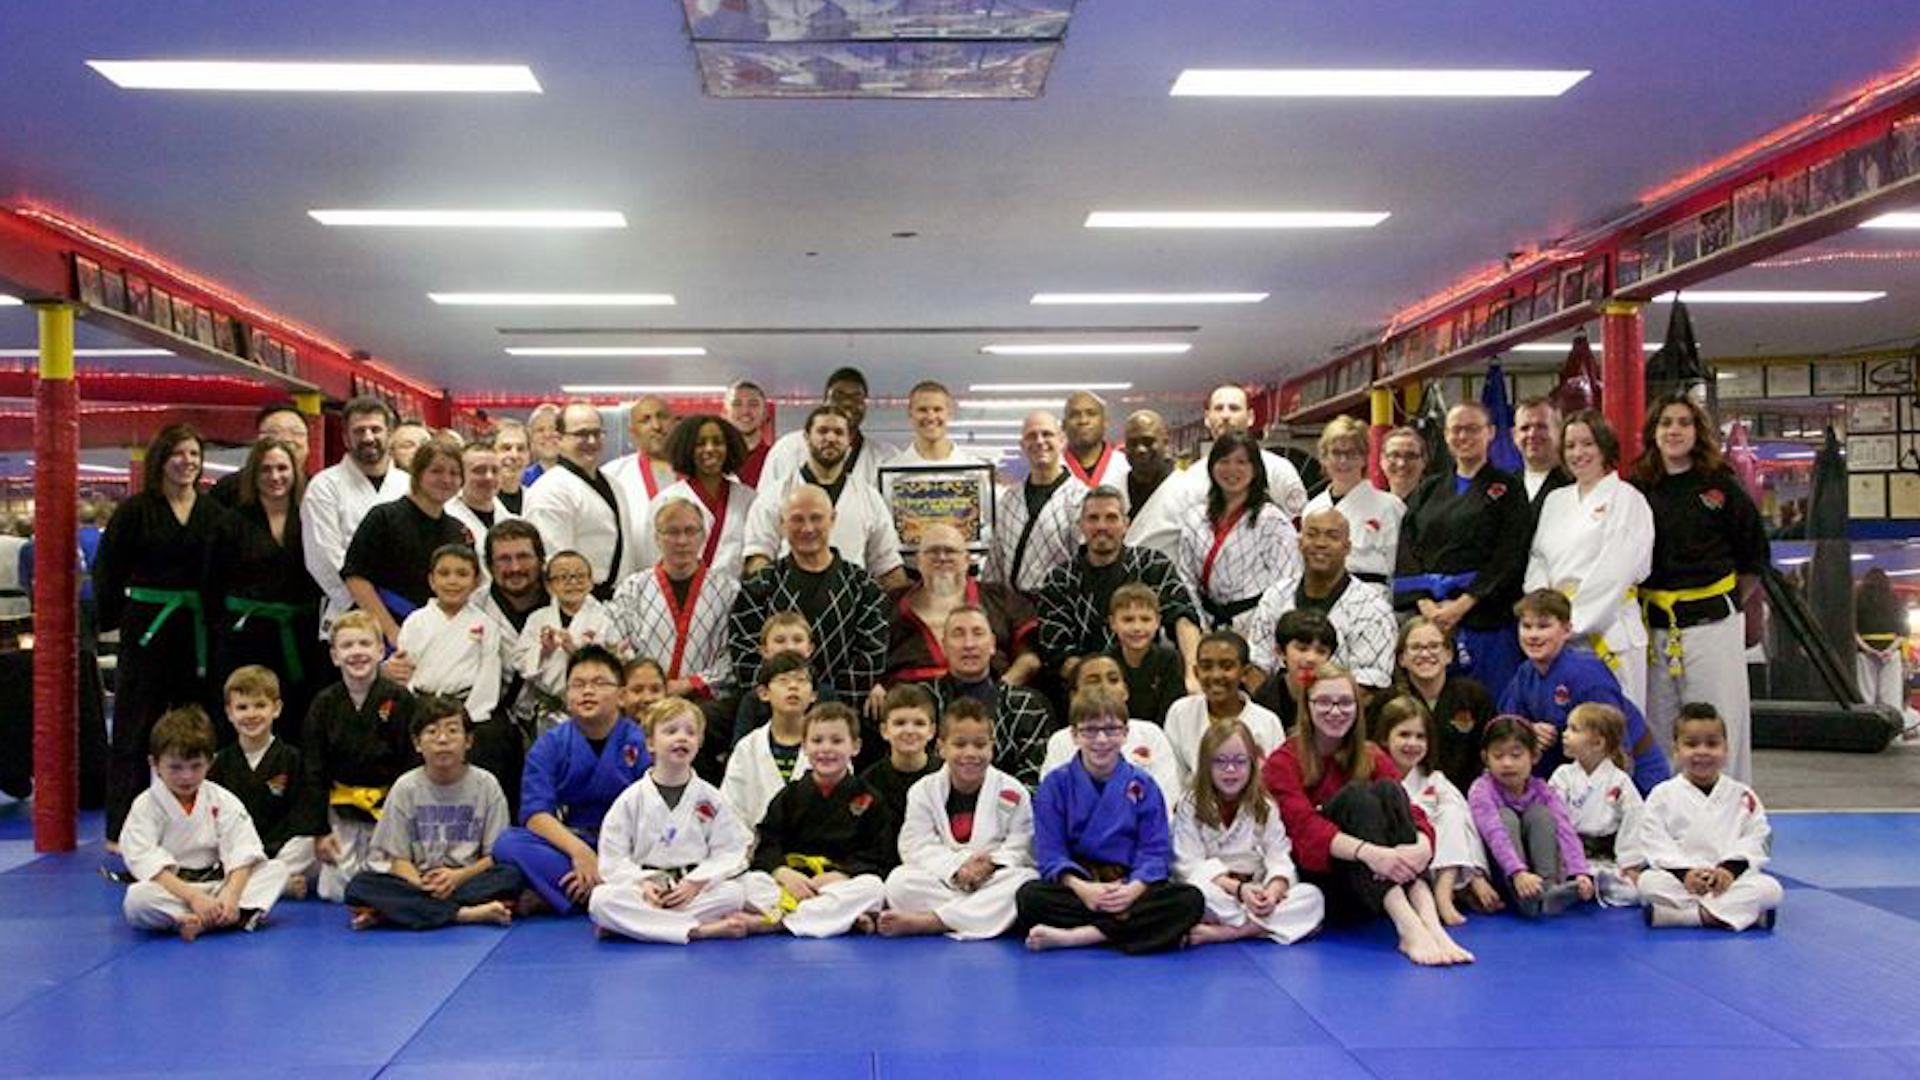 <strong>Celebrating 40 years of Martial Arts Excellence since 1980</strong></br>